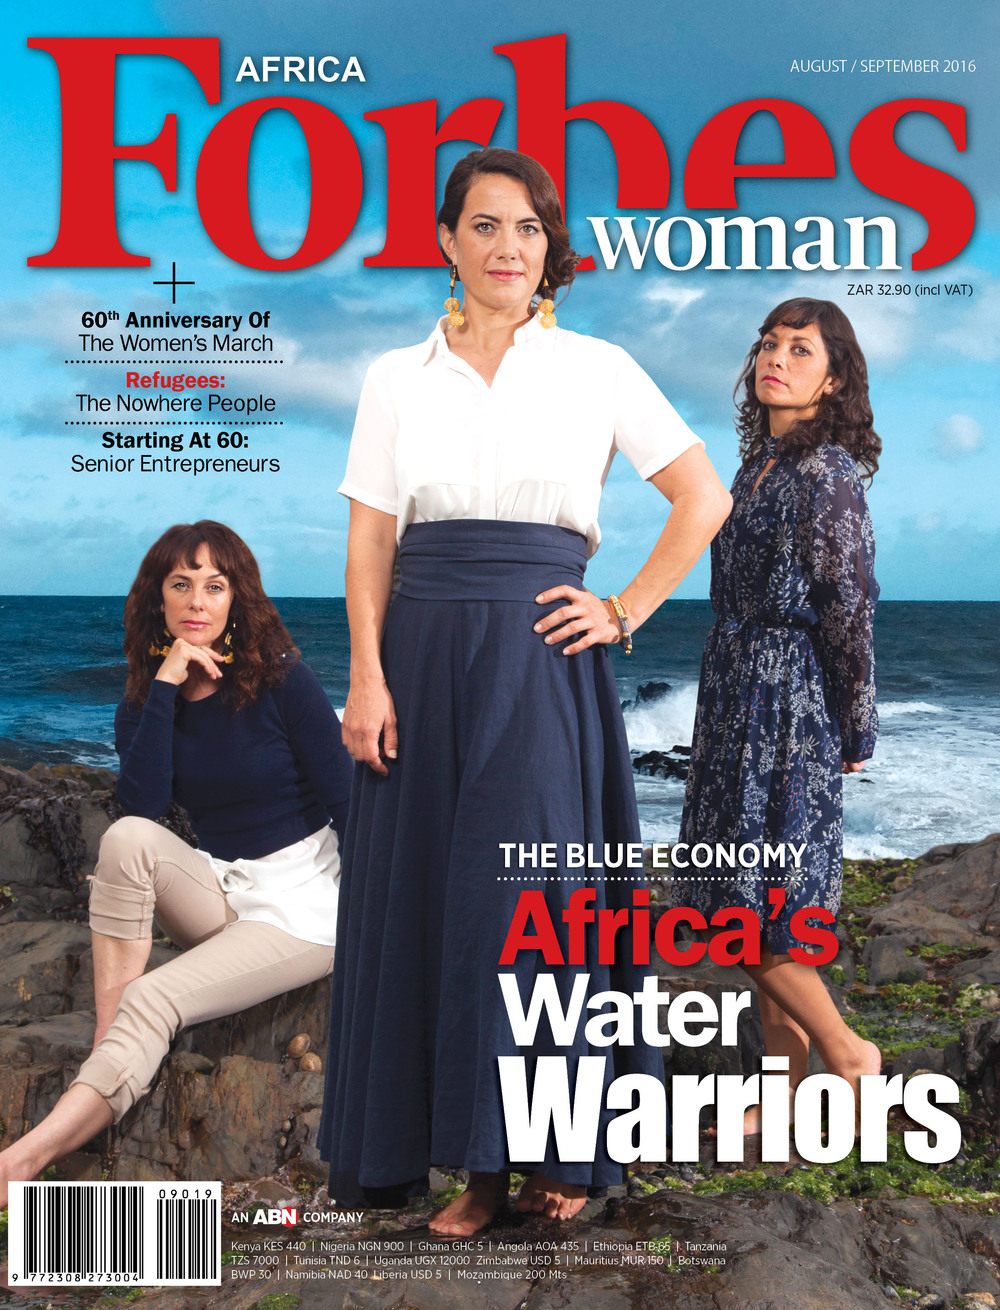 "Forbes Woman Africa / The Blue Economy                         by Jay Caboz August 12, 2016 ""FORBES WOMAN AFRICA highlights the South African entrepreneurs who have made the sea their business, their life. The stories of grit are many. Freediving champion Hanli Prinsloo speaks of the burgeoning business of sea tourism... 'As we move more toward an urbanized world that is technology-driven, nature experiences have become so much harder to find in true wilderness. The ocean is our last true blue wilderness'  (says I AM WATER co-founder Hanli Prinsloo.)"" Read the whole article here."